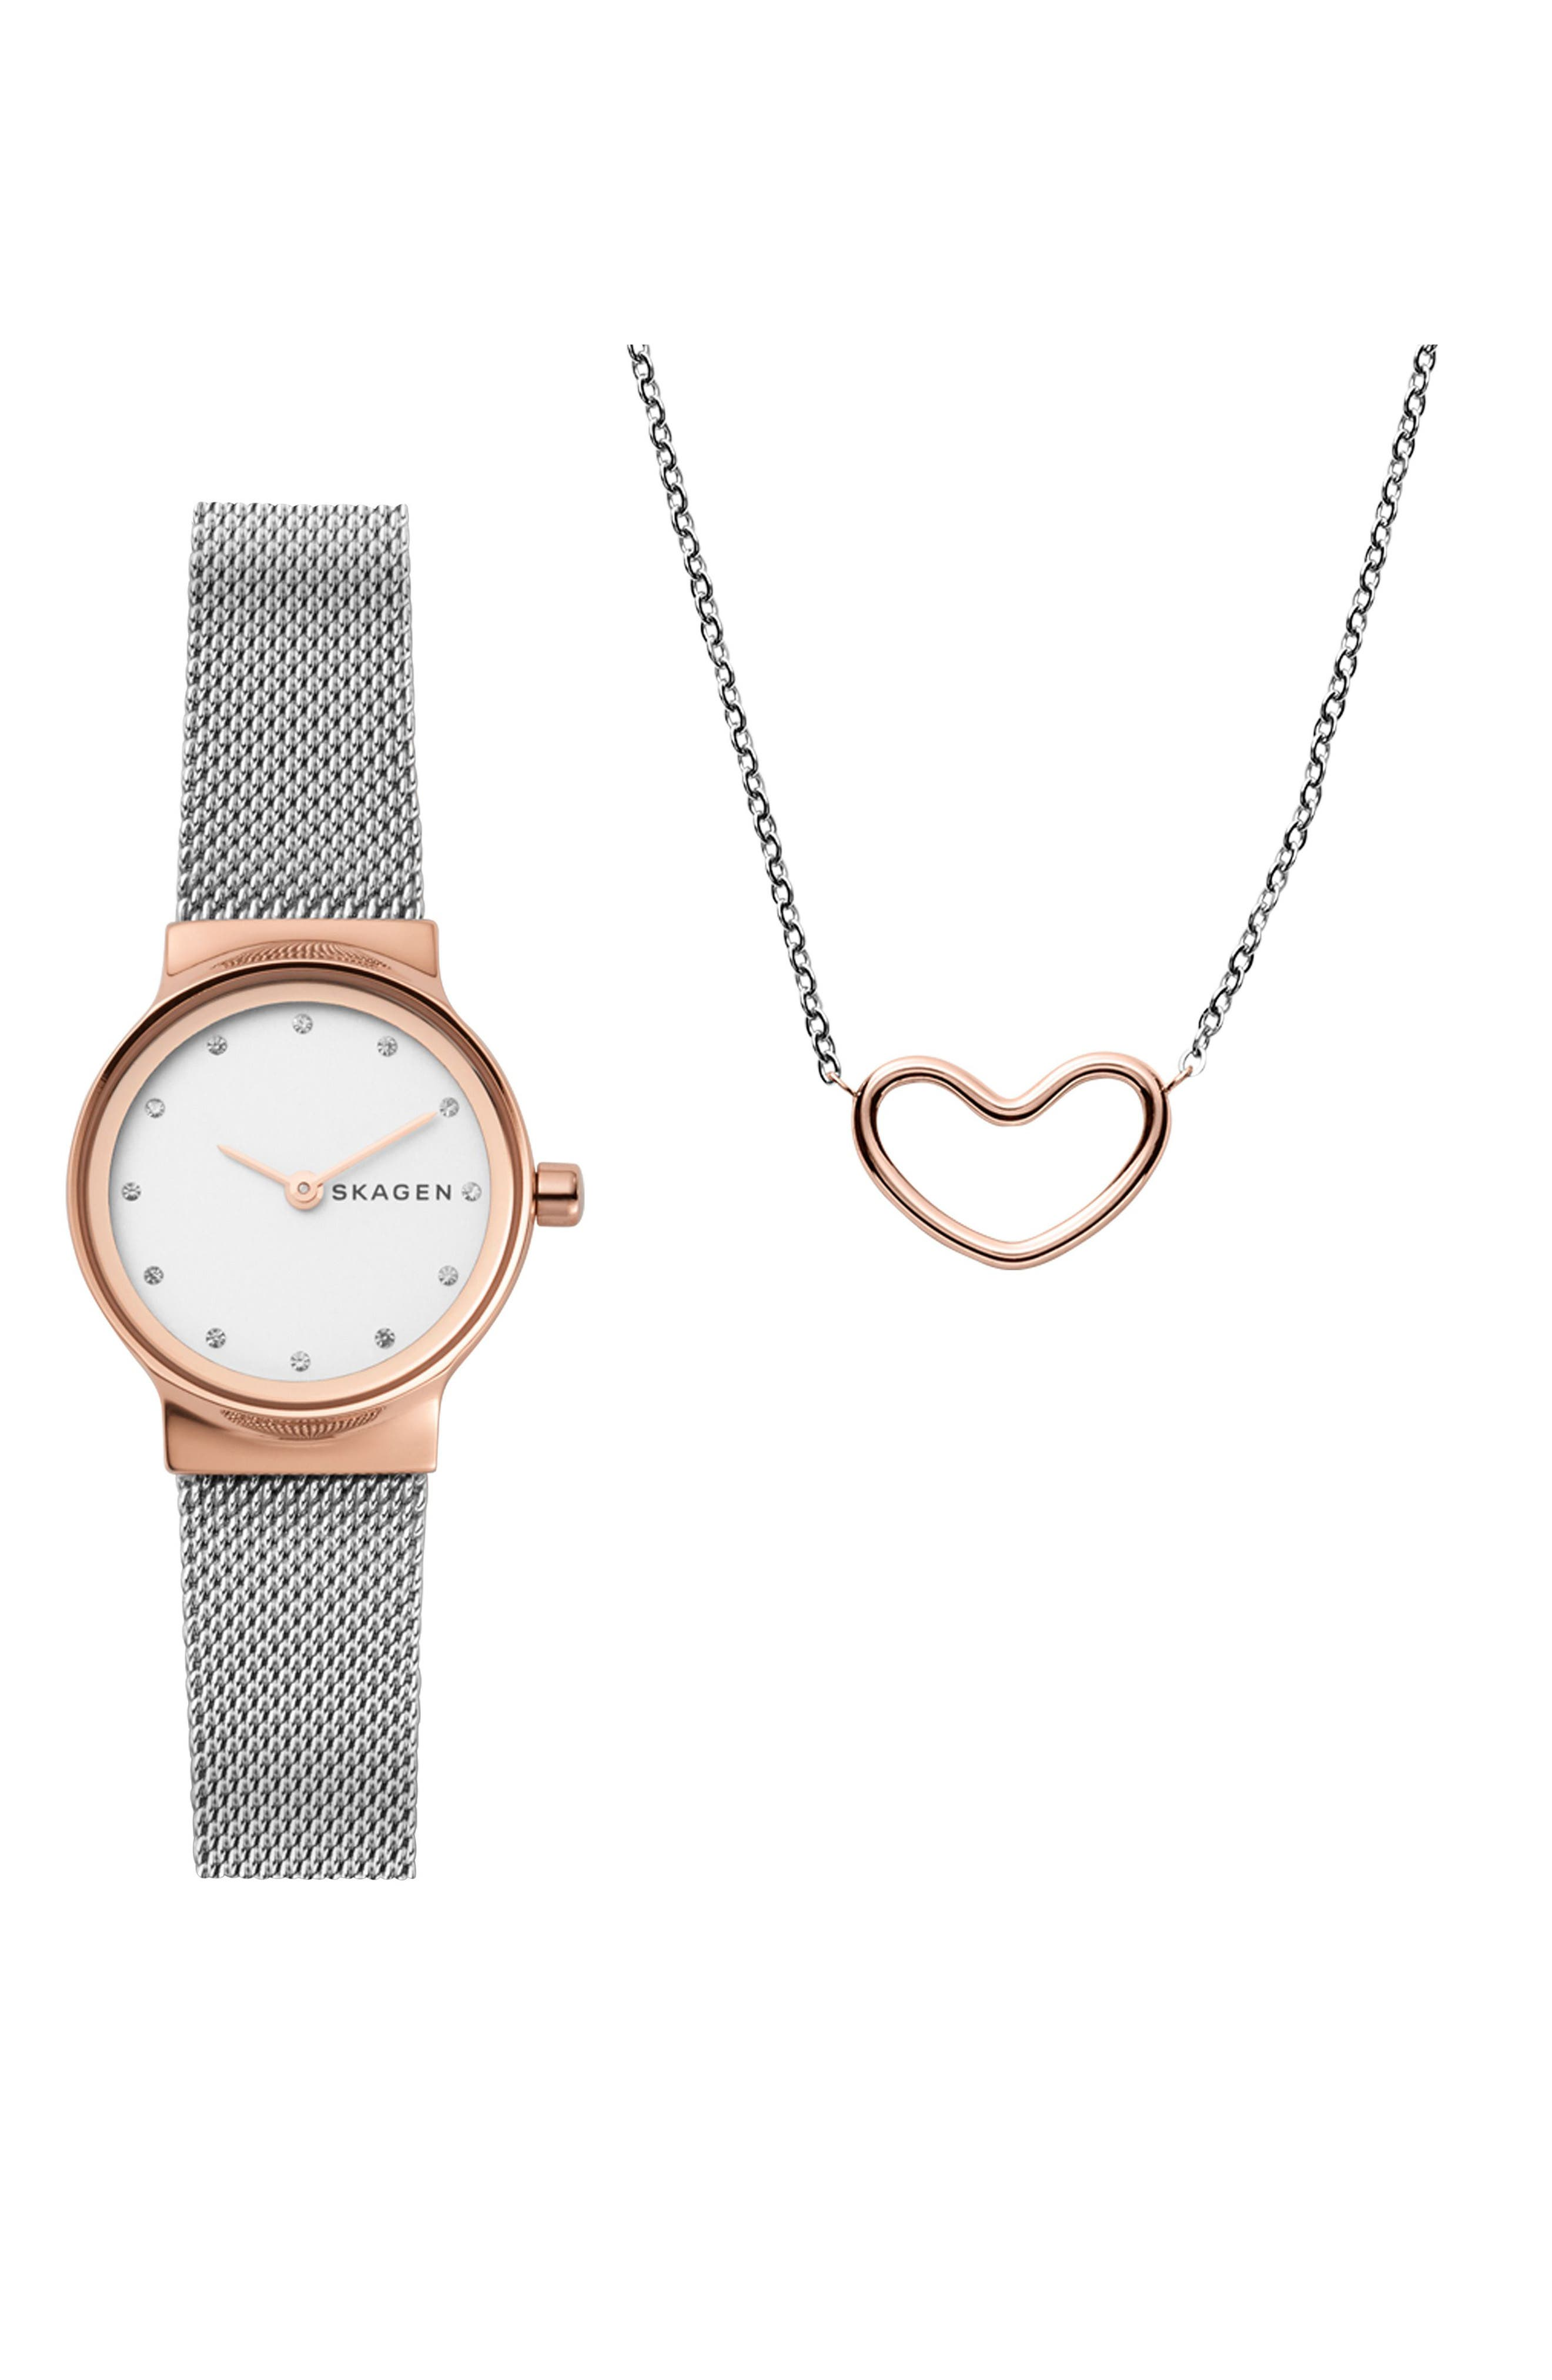 Freja Crystal Mesh Strap Watch & Necklace Set, 26mm,                             Main thumbnail 1, color,                             Silver/ White/ Rose Gold